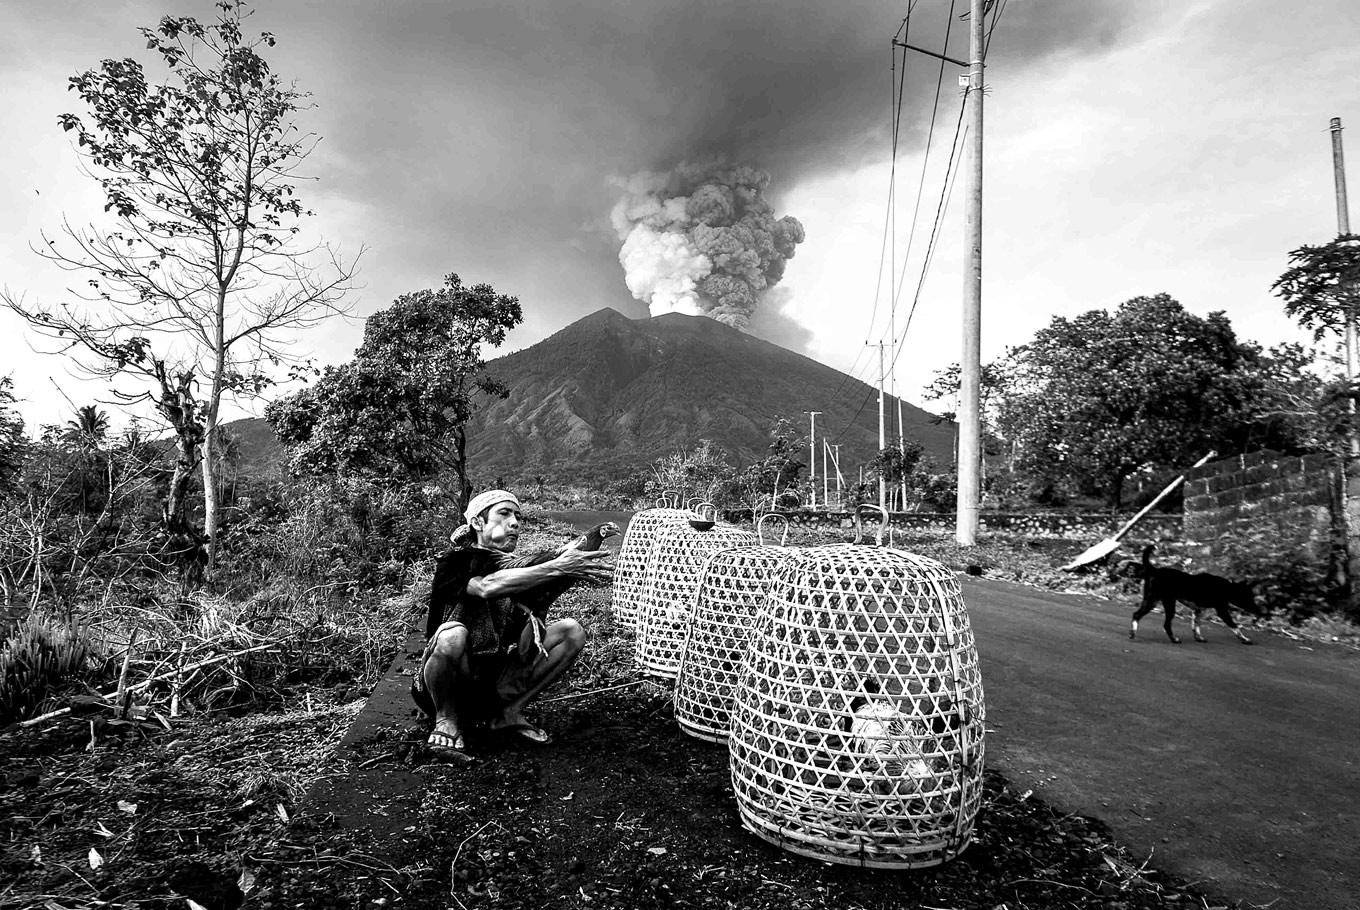 Business as usual: A Balinese man caresses his rooster with the rumblings of Mount Agung behind backdrop in a photograph by Wayan Sukarma.